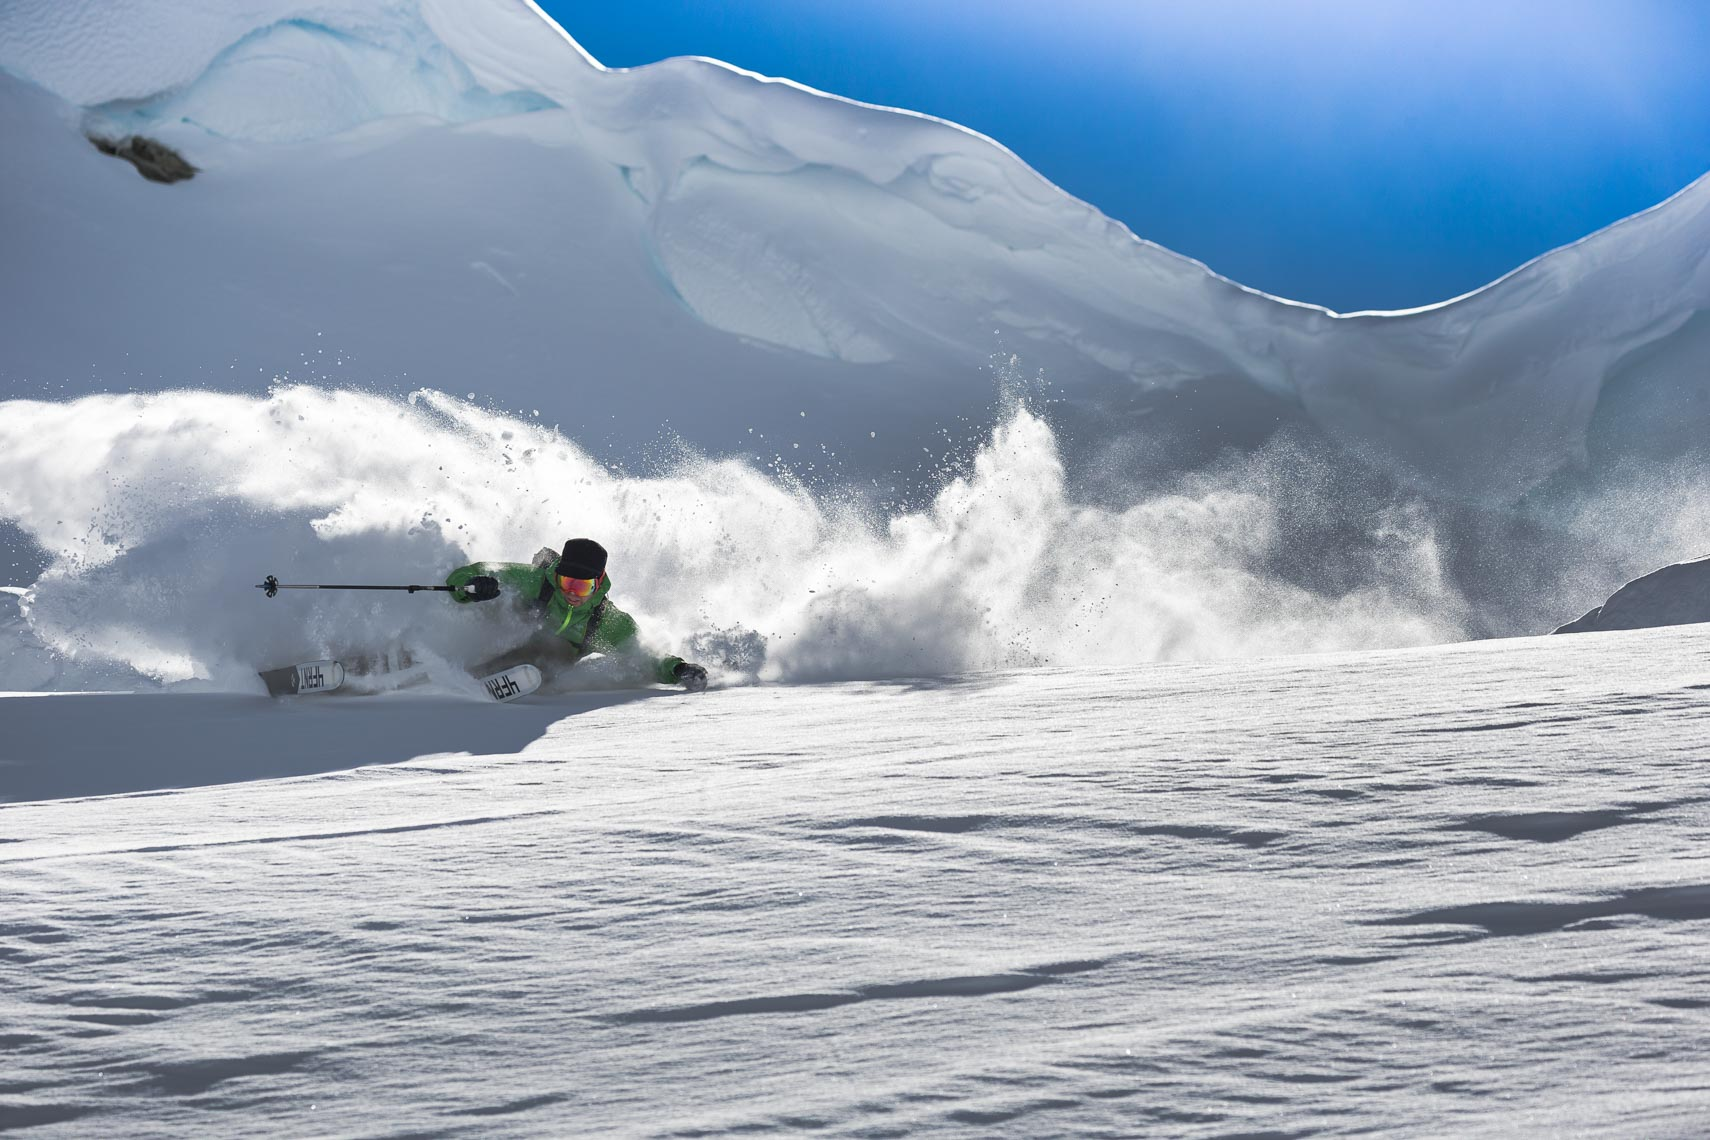 Eric Hoji Hjorleifson skiing in Whistler Canada shot by pro ski photographer